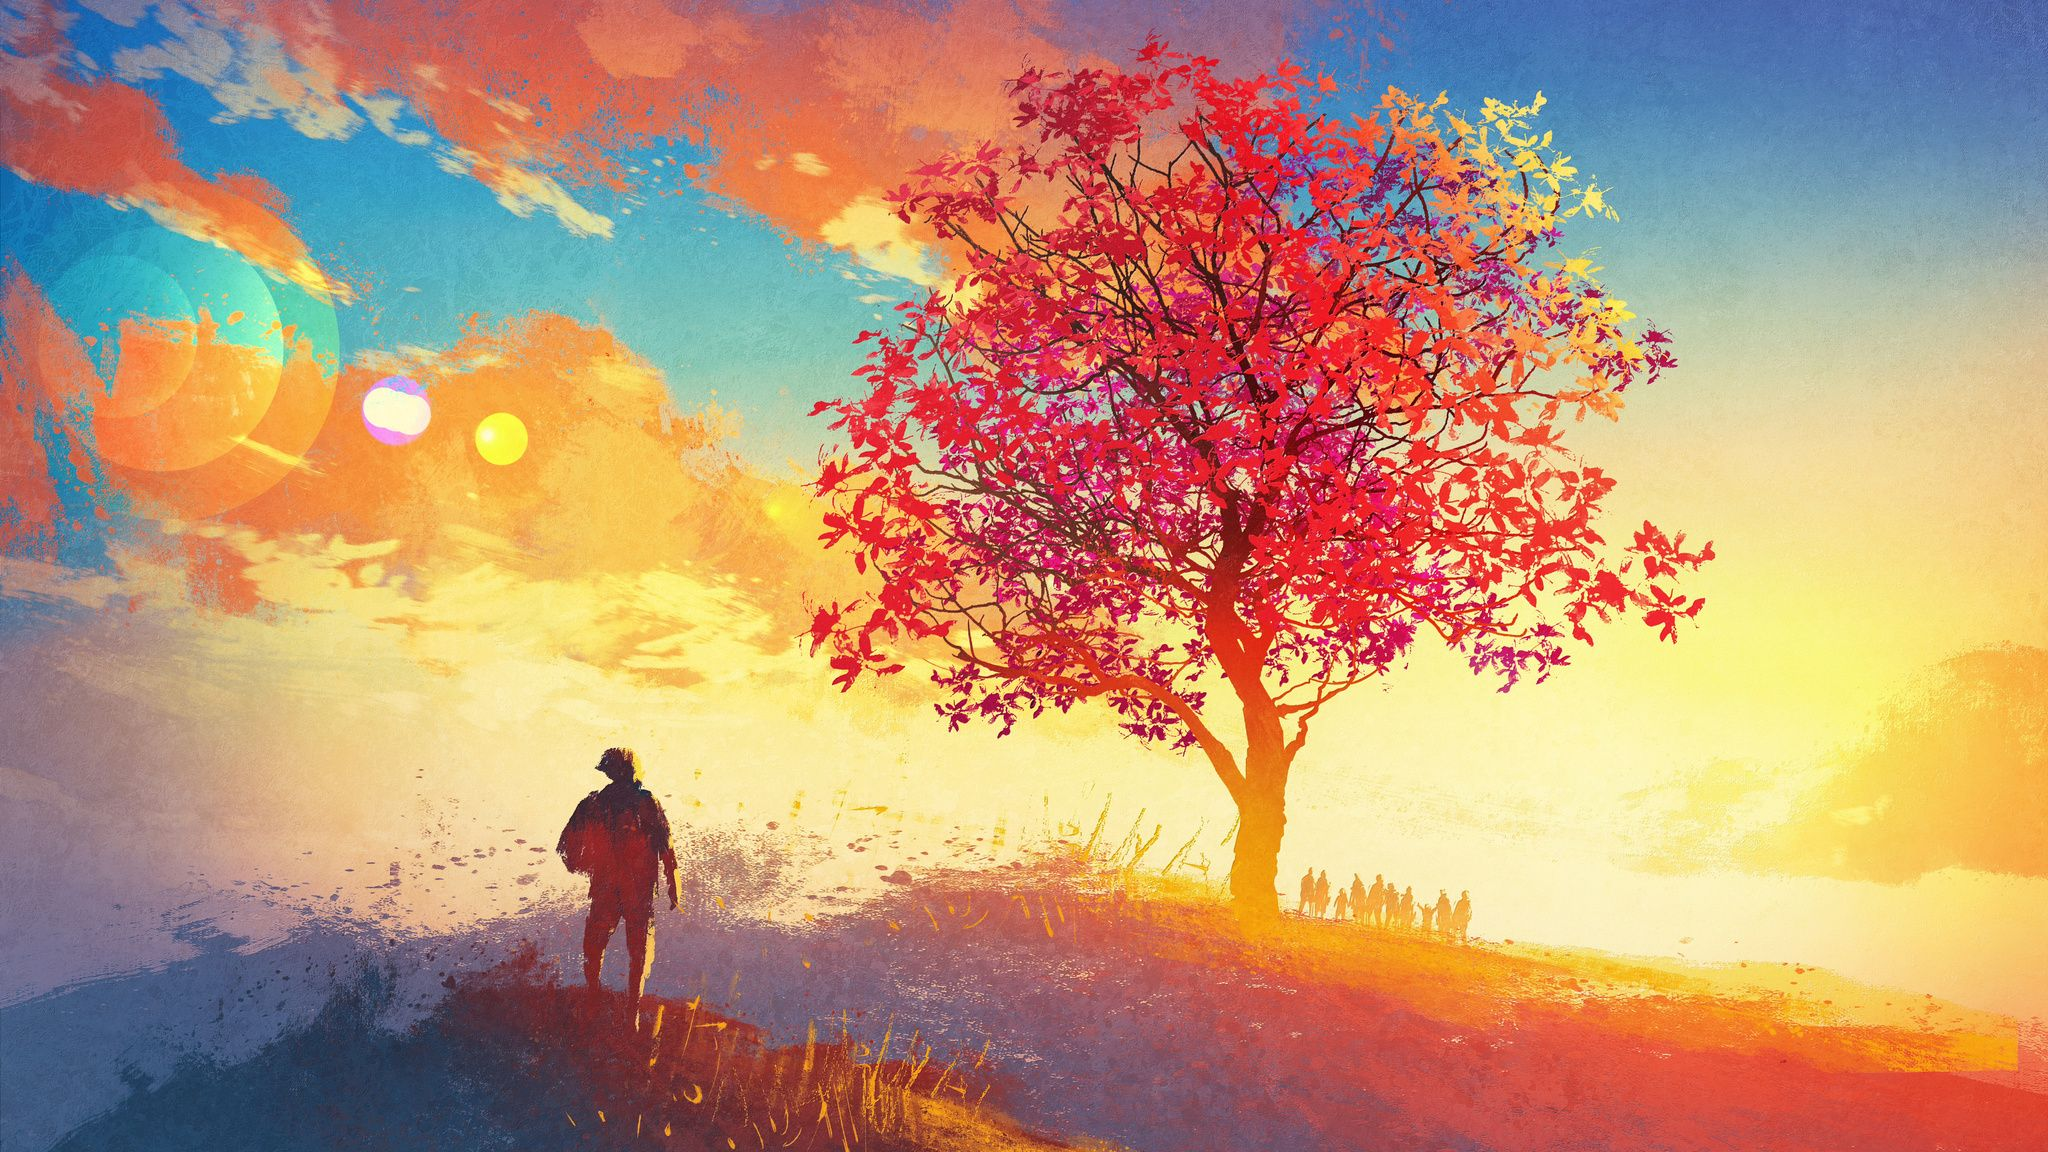 4K Painting Wallpapers - Top Free 4K Painting Backgrounds ...